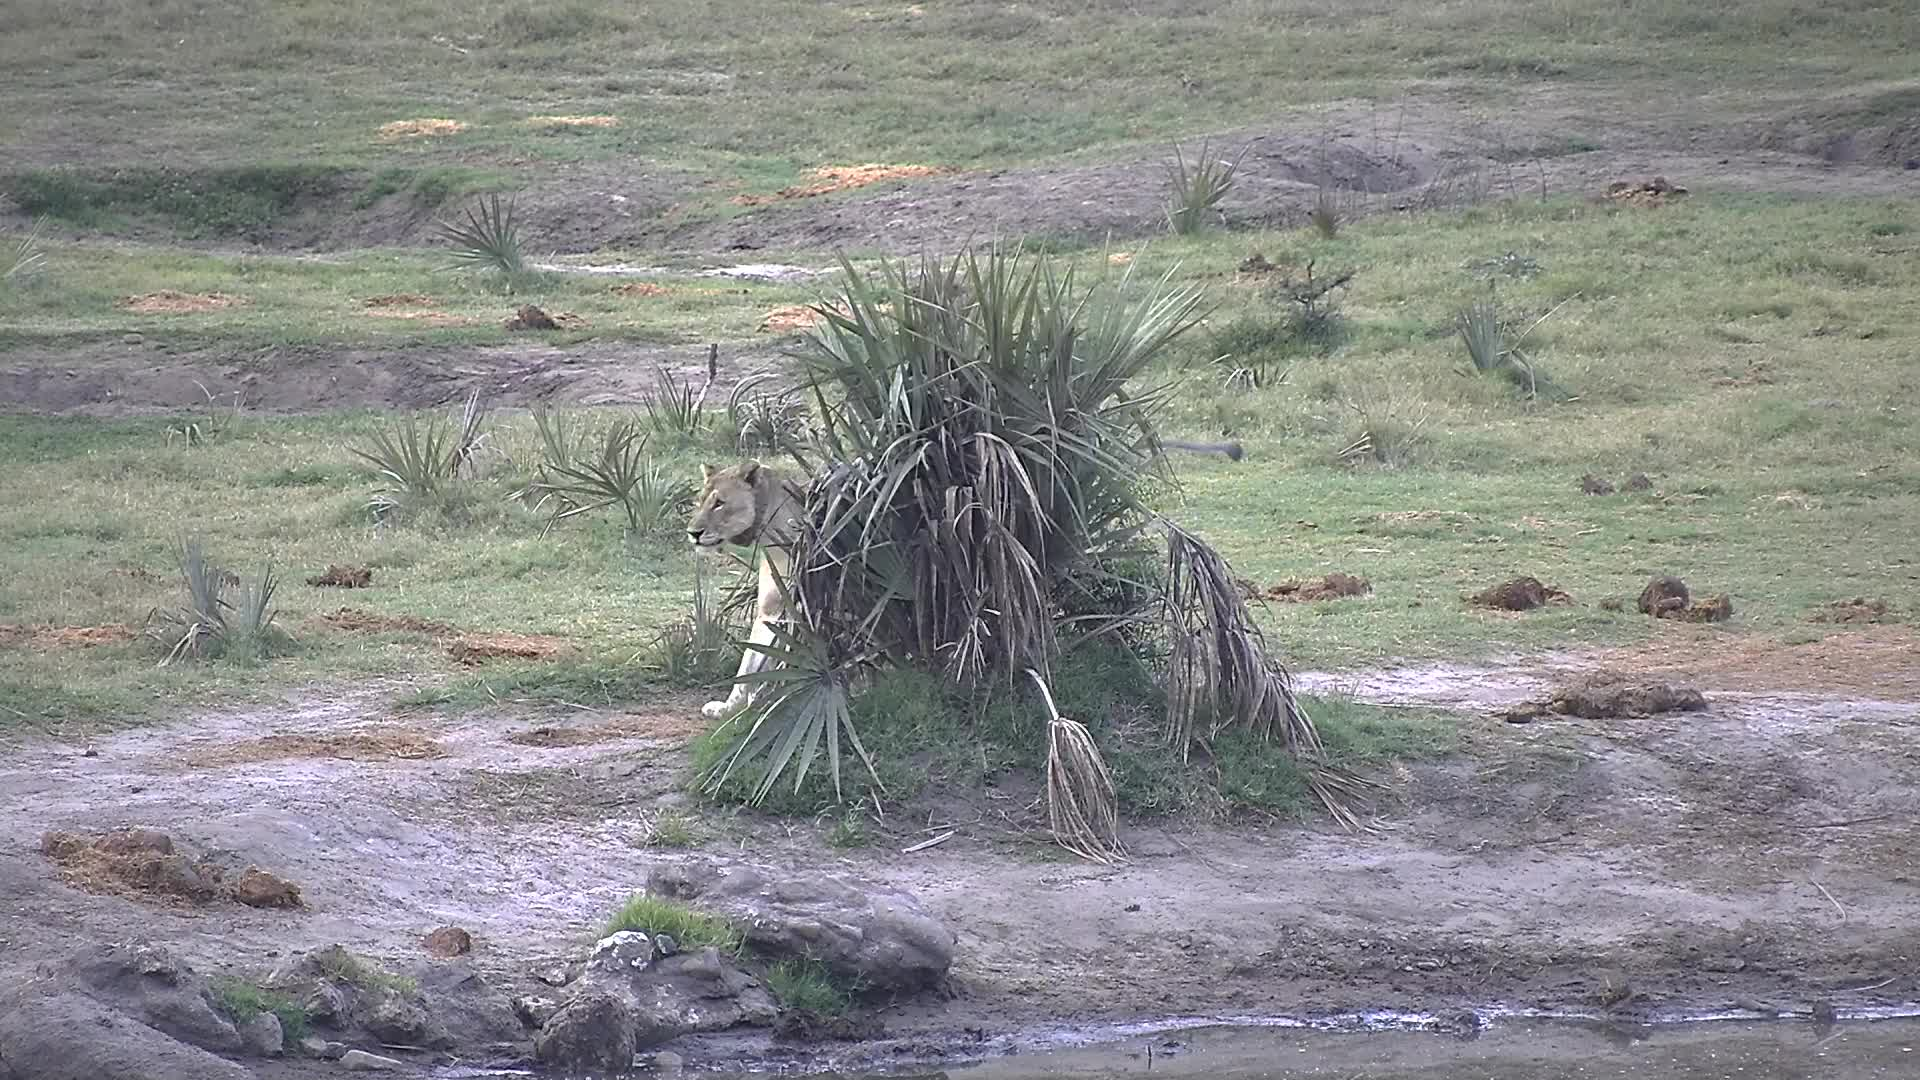 VIDEO: Lioness pays a short visit to the waterhole